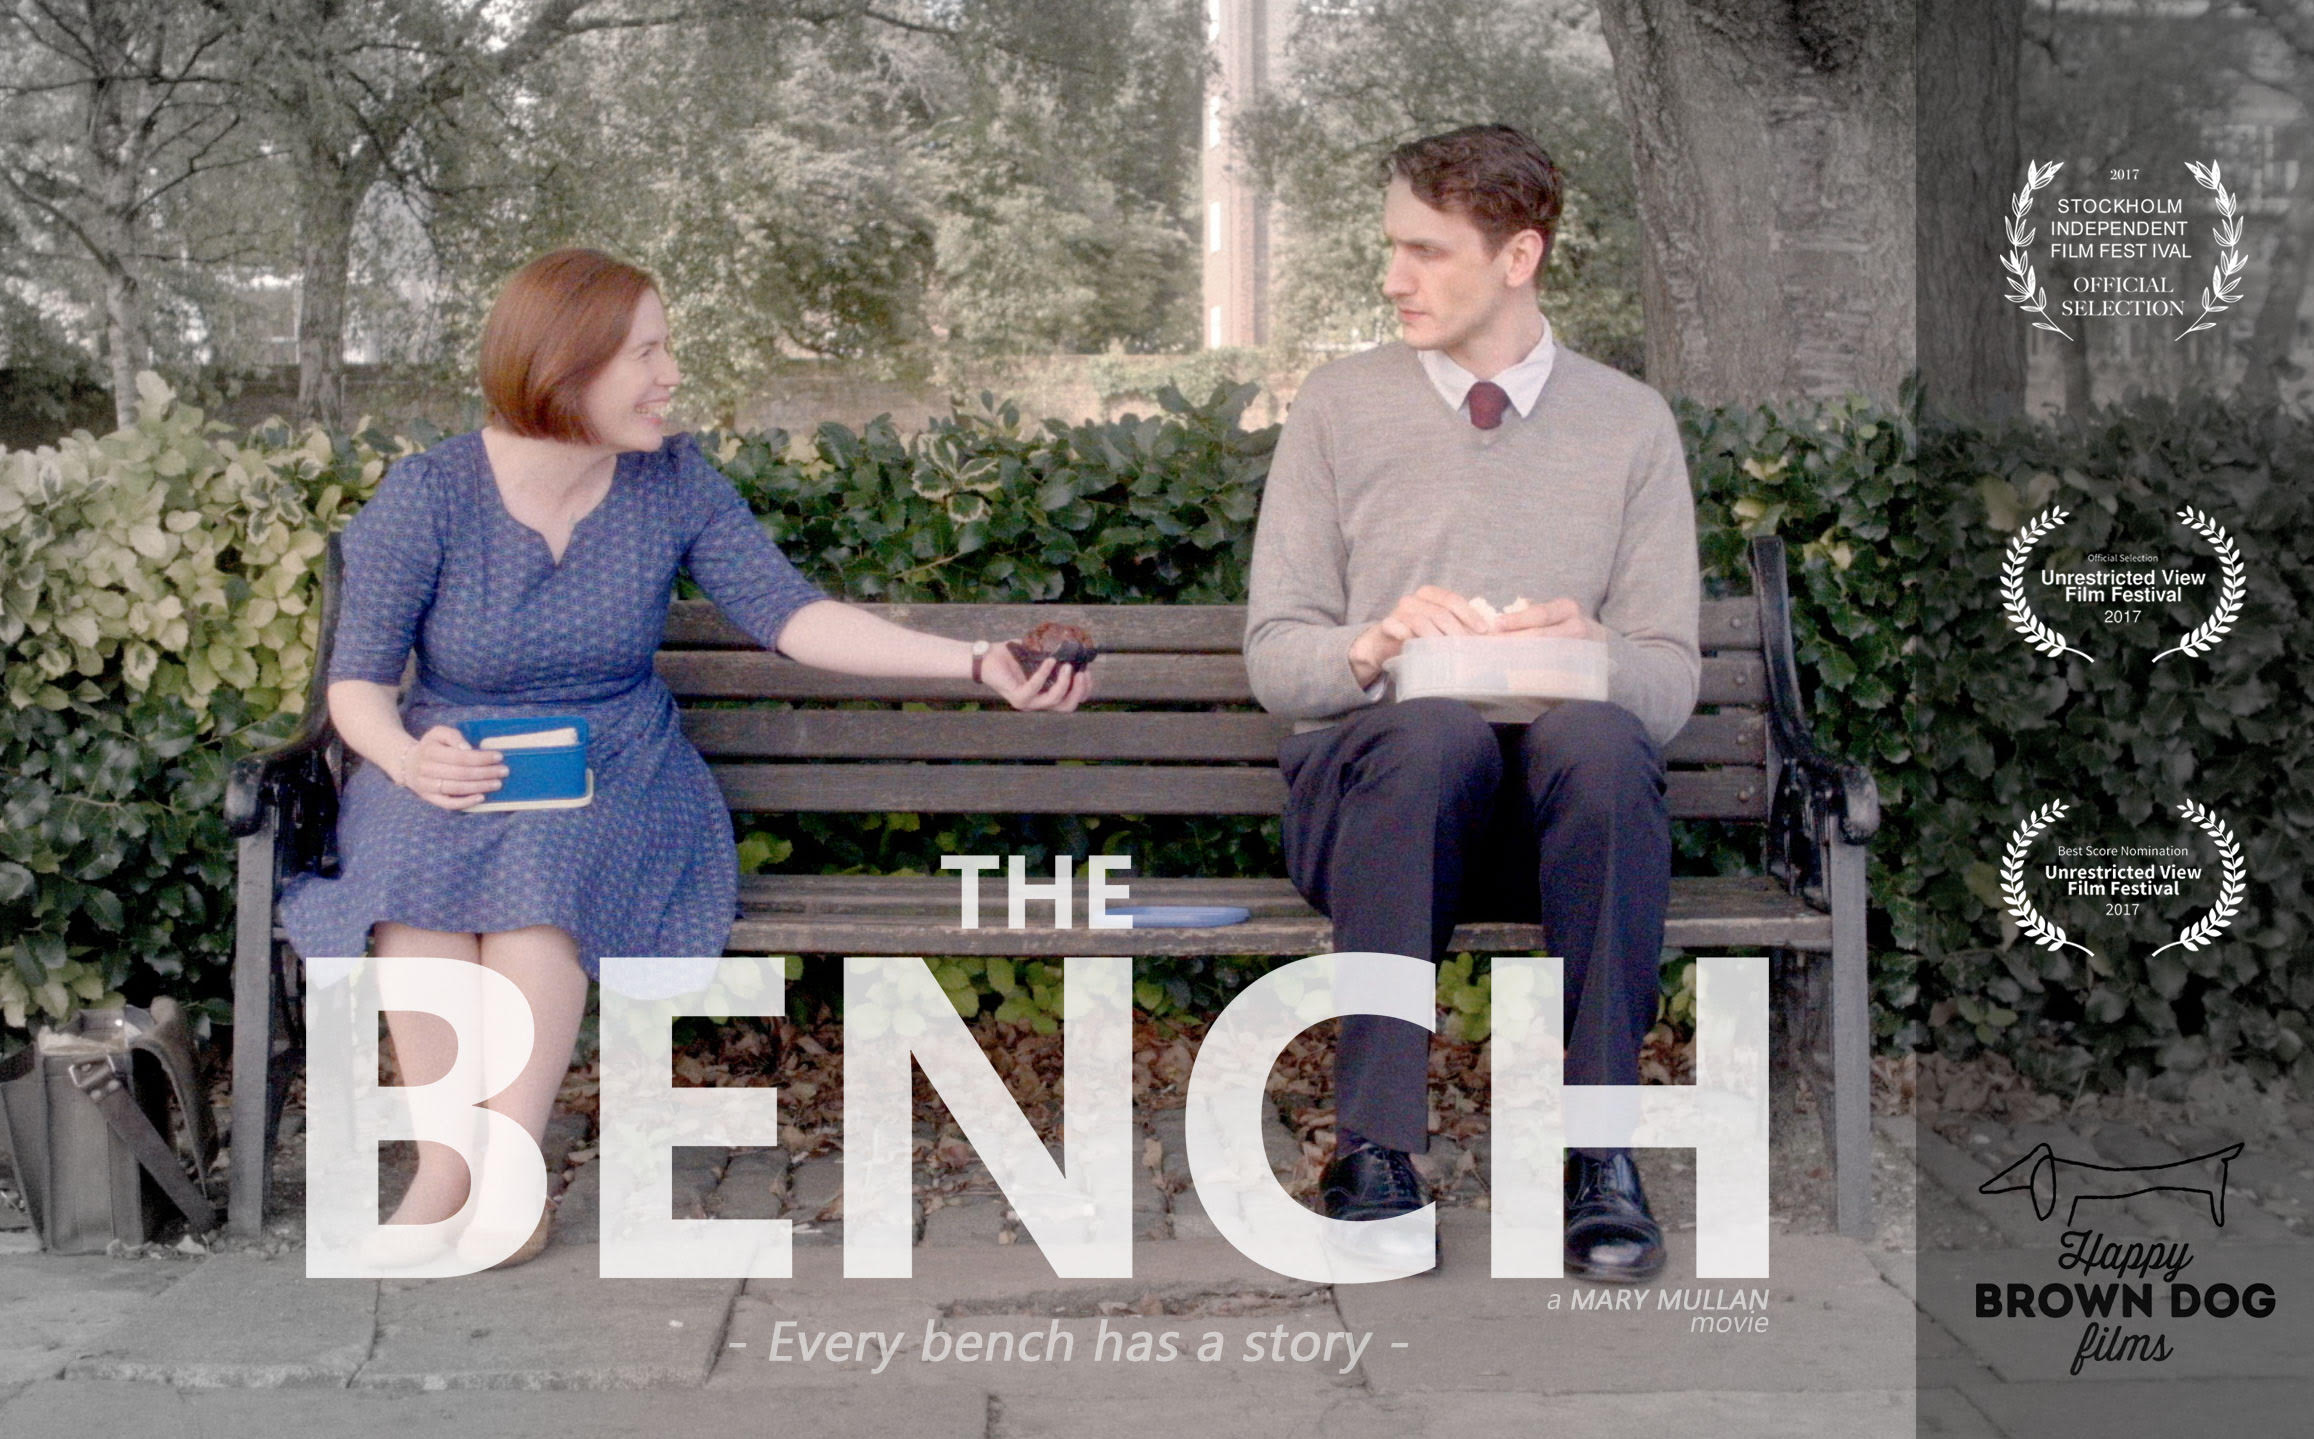 The Bench - Happy Brown Dog Films